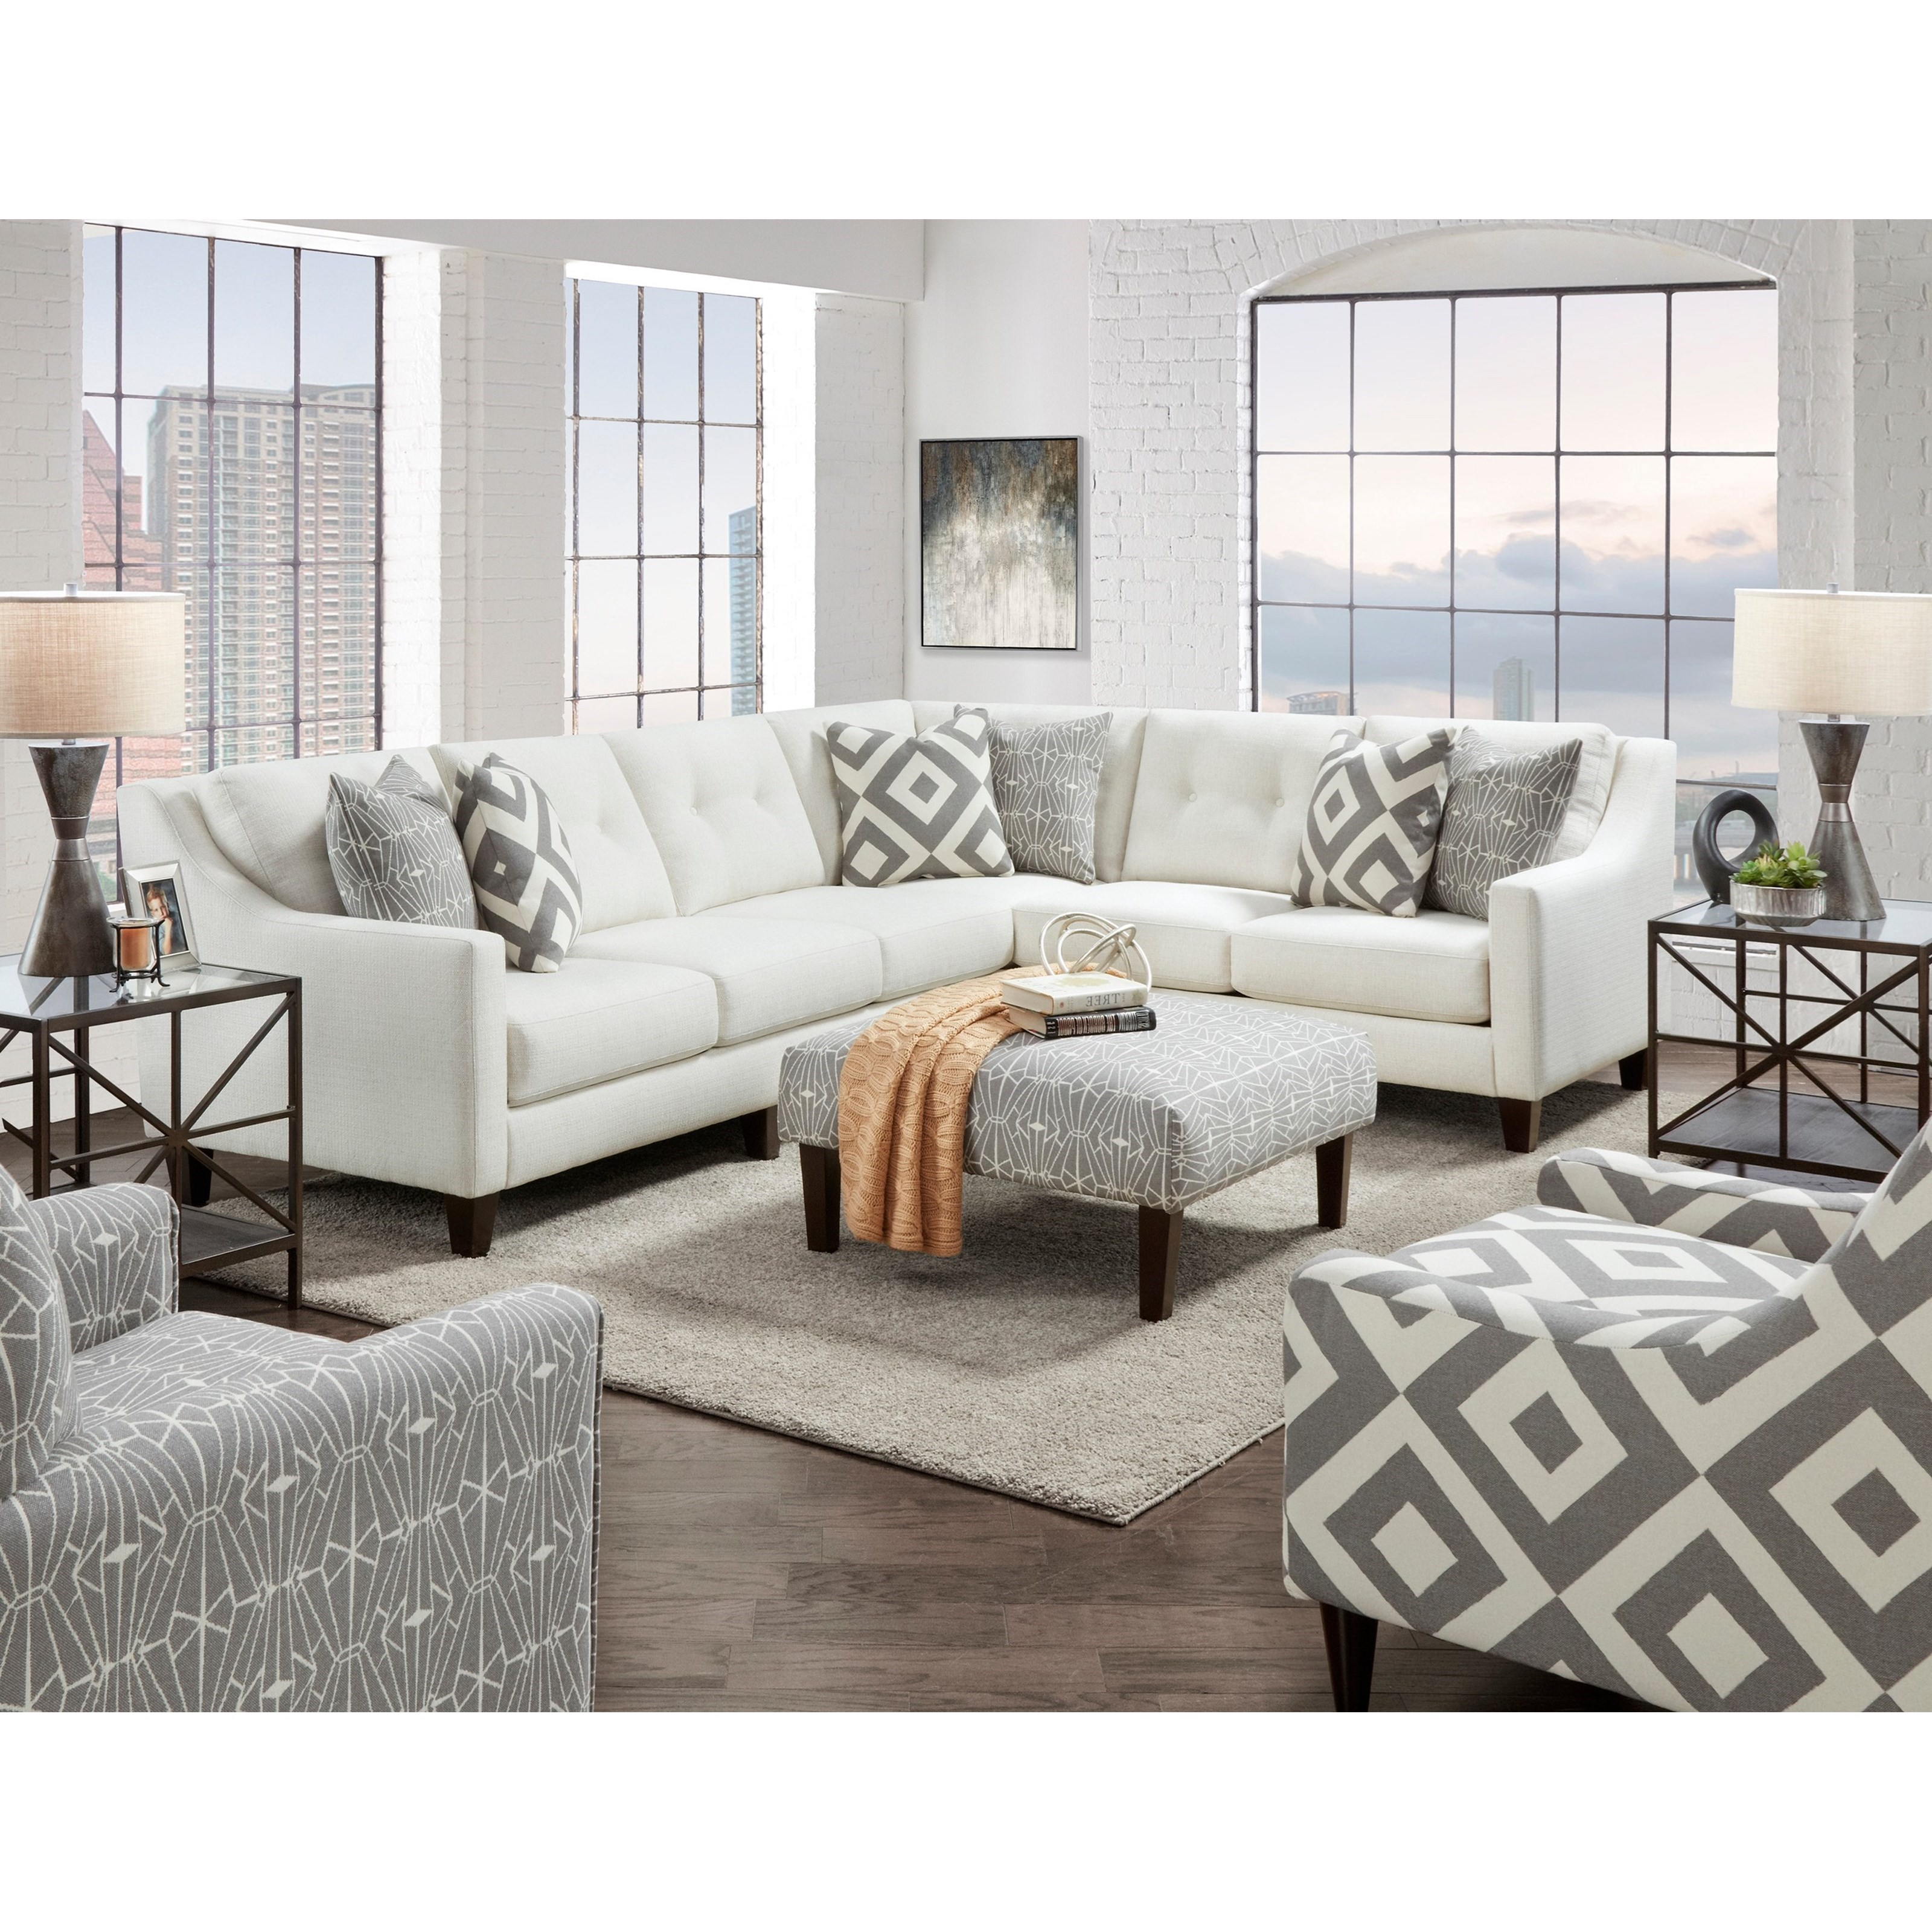 3280 Living Room Group by VFM Signature at Virginia Furniture Market